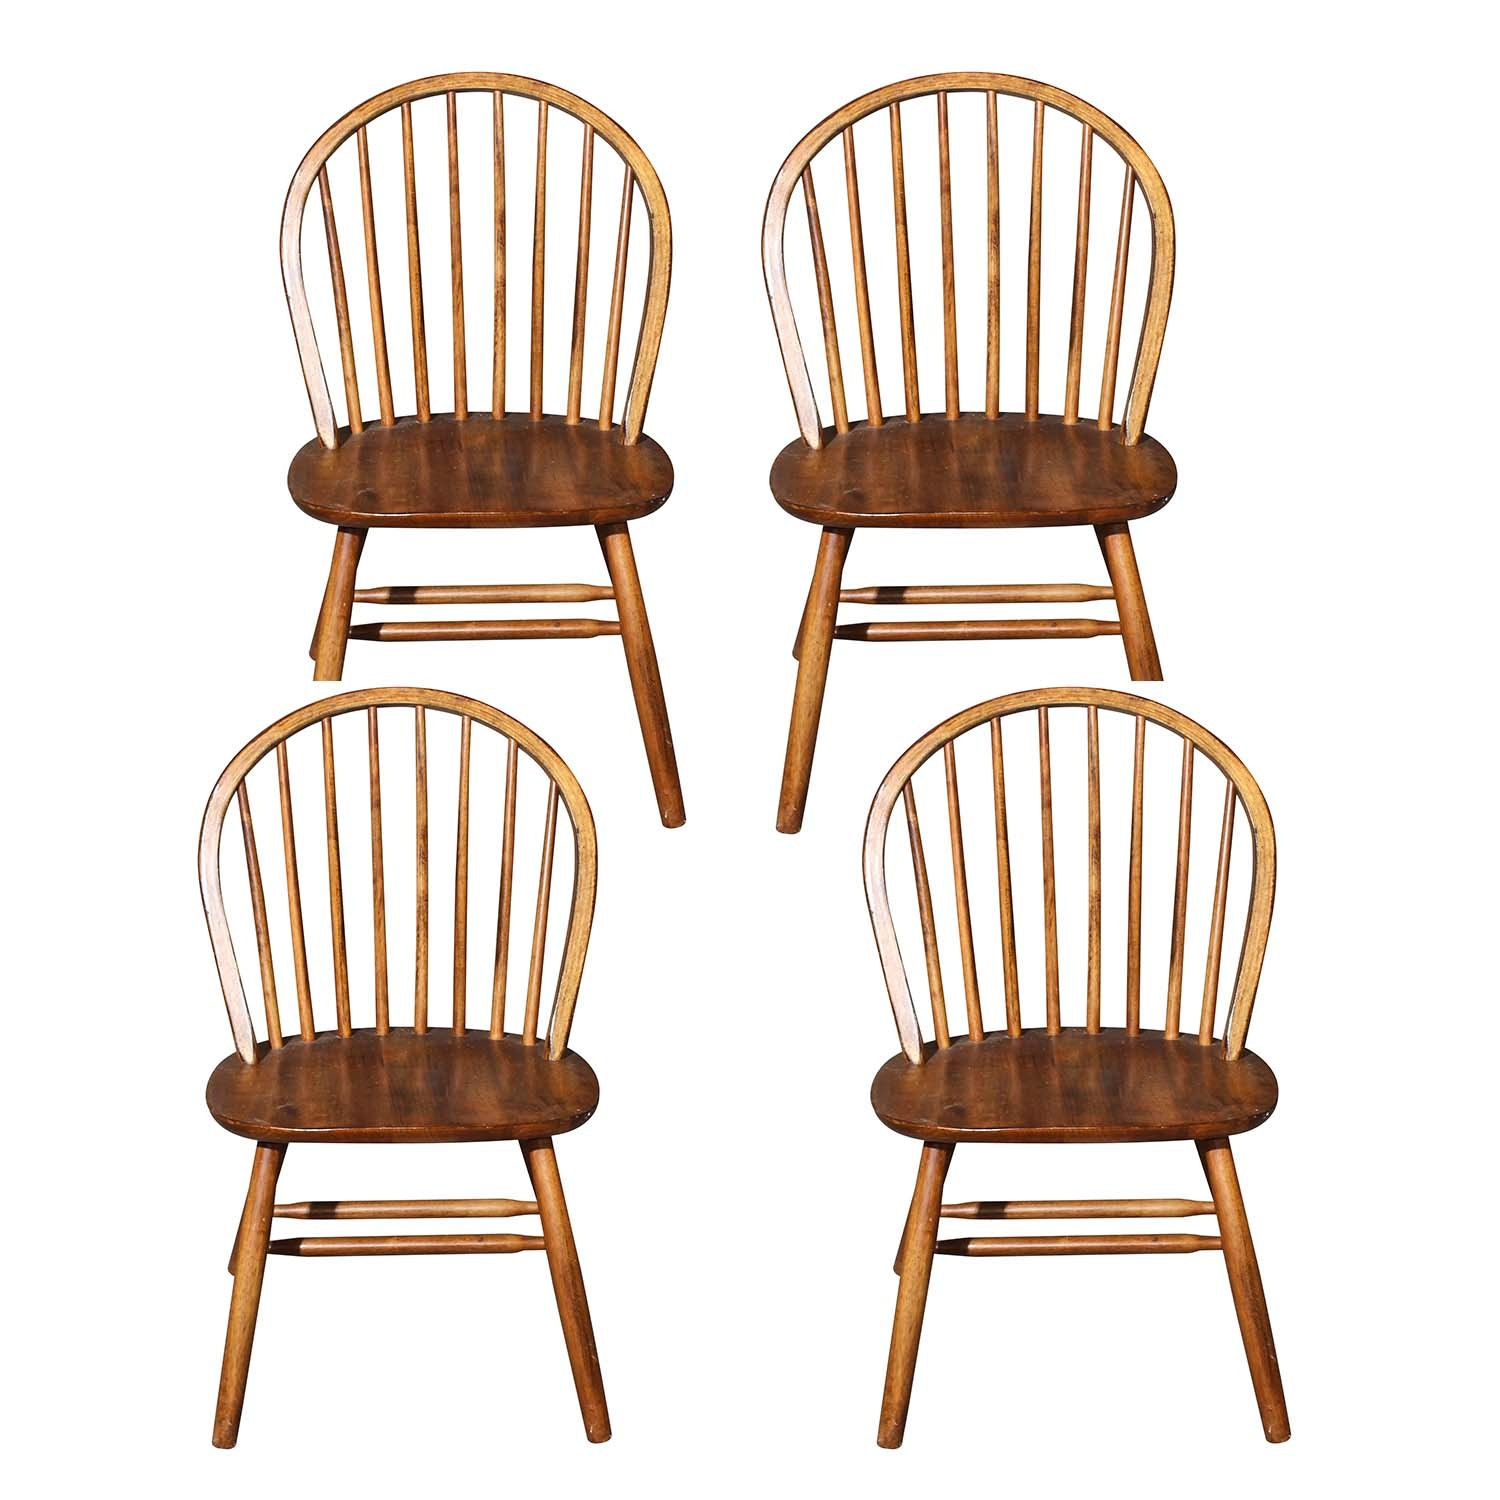 Four Windsor Style Ash Wood Chairs